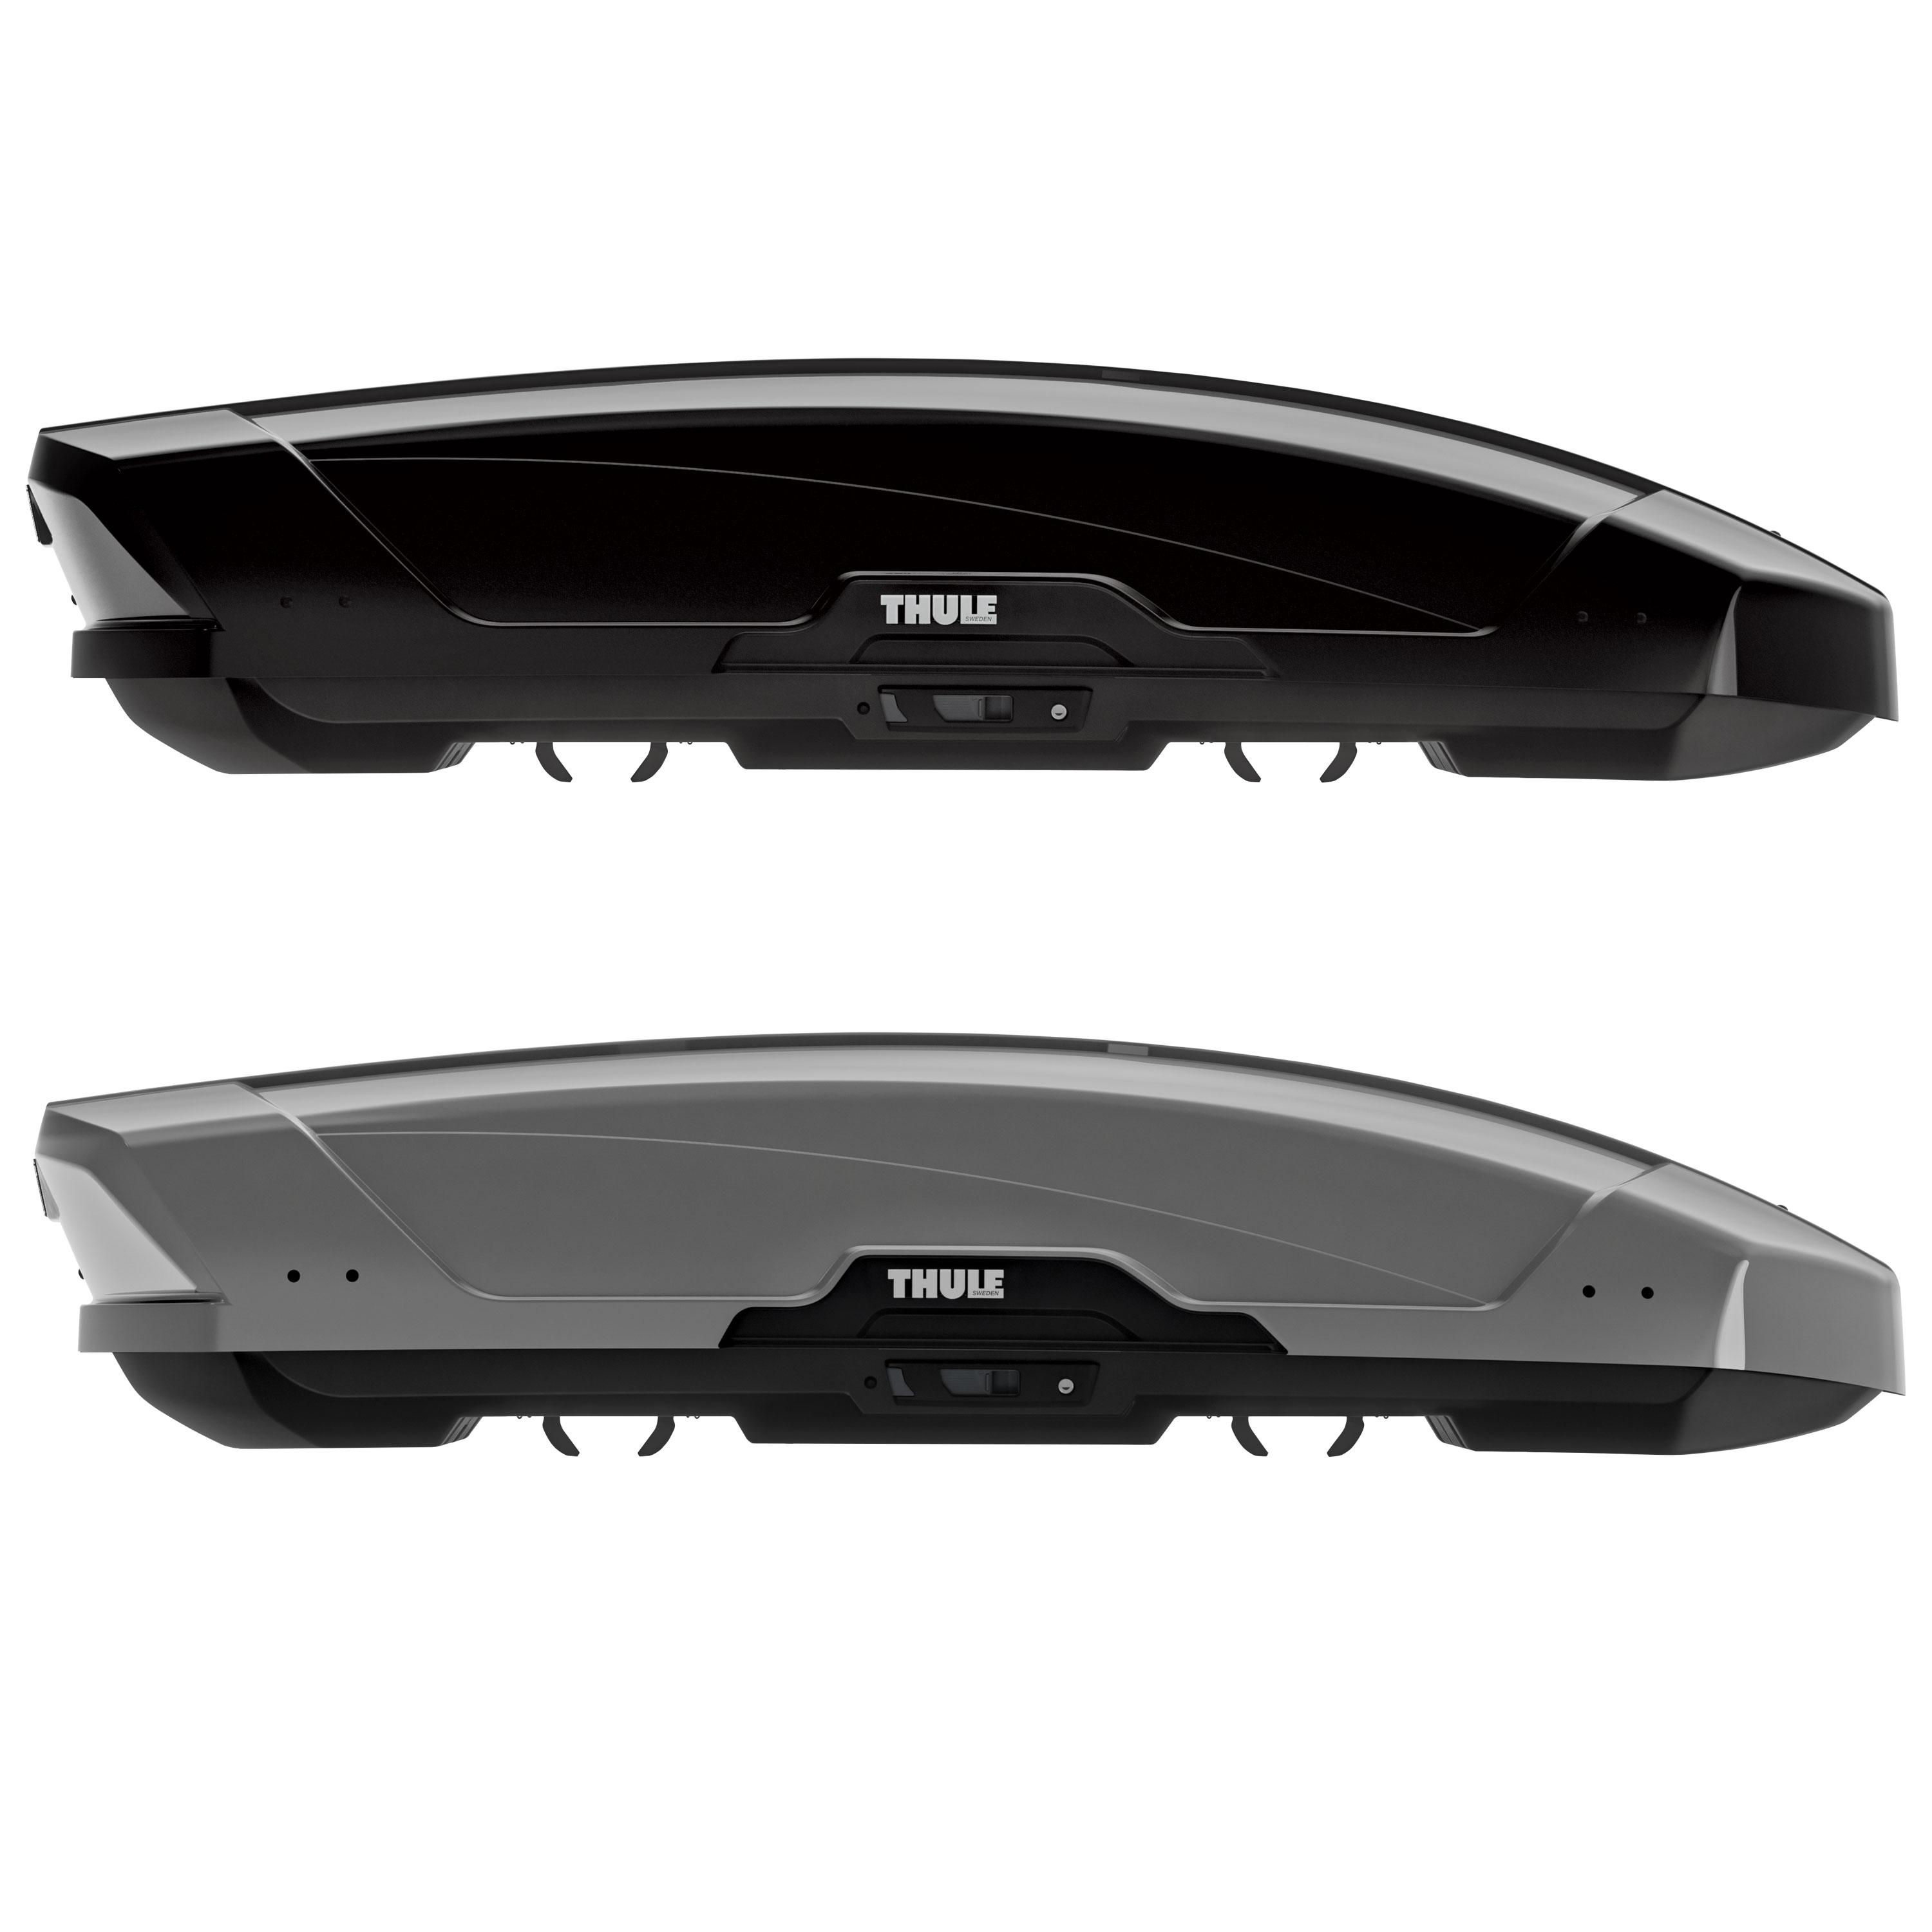 thule motion xt rooftop cargo carrier. Black Bedroom Furniture Sets. Home Design Ideas